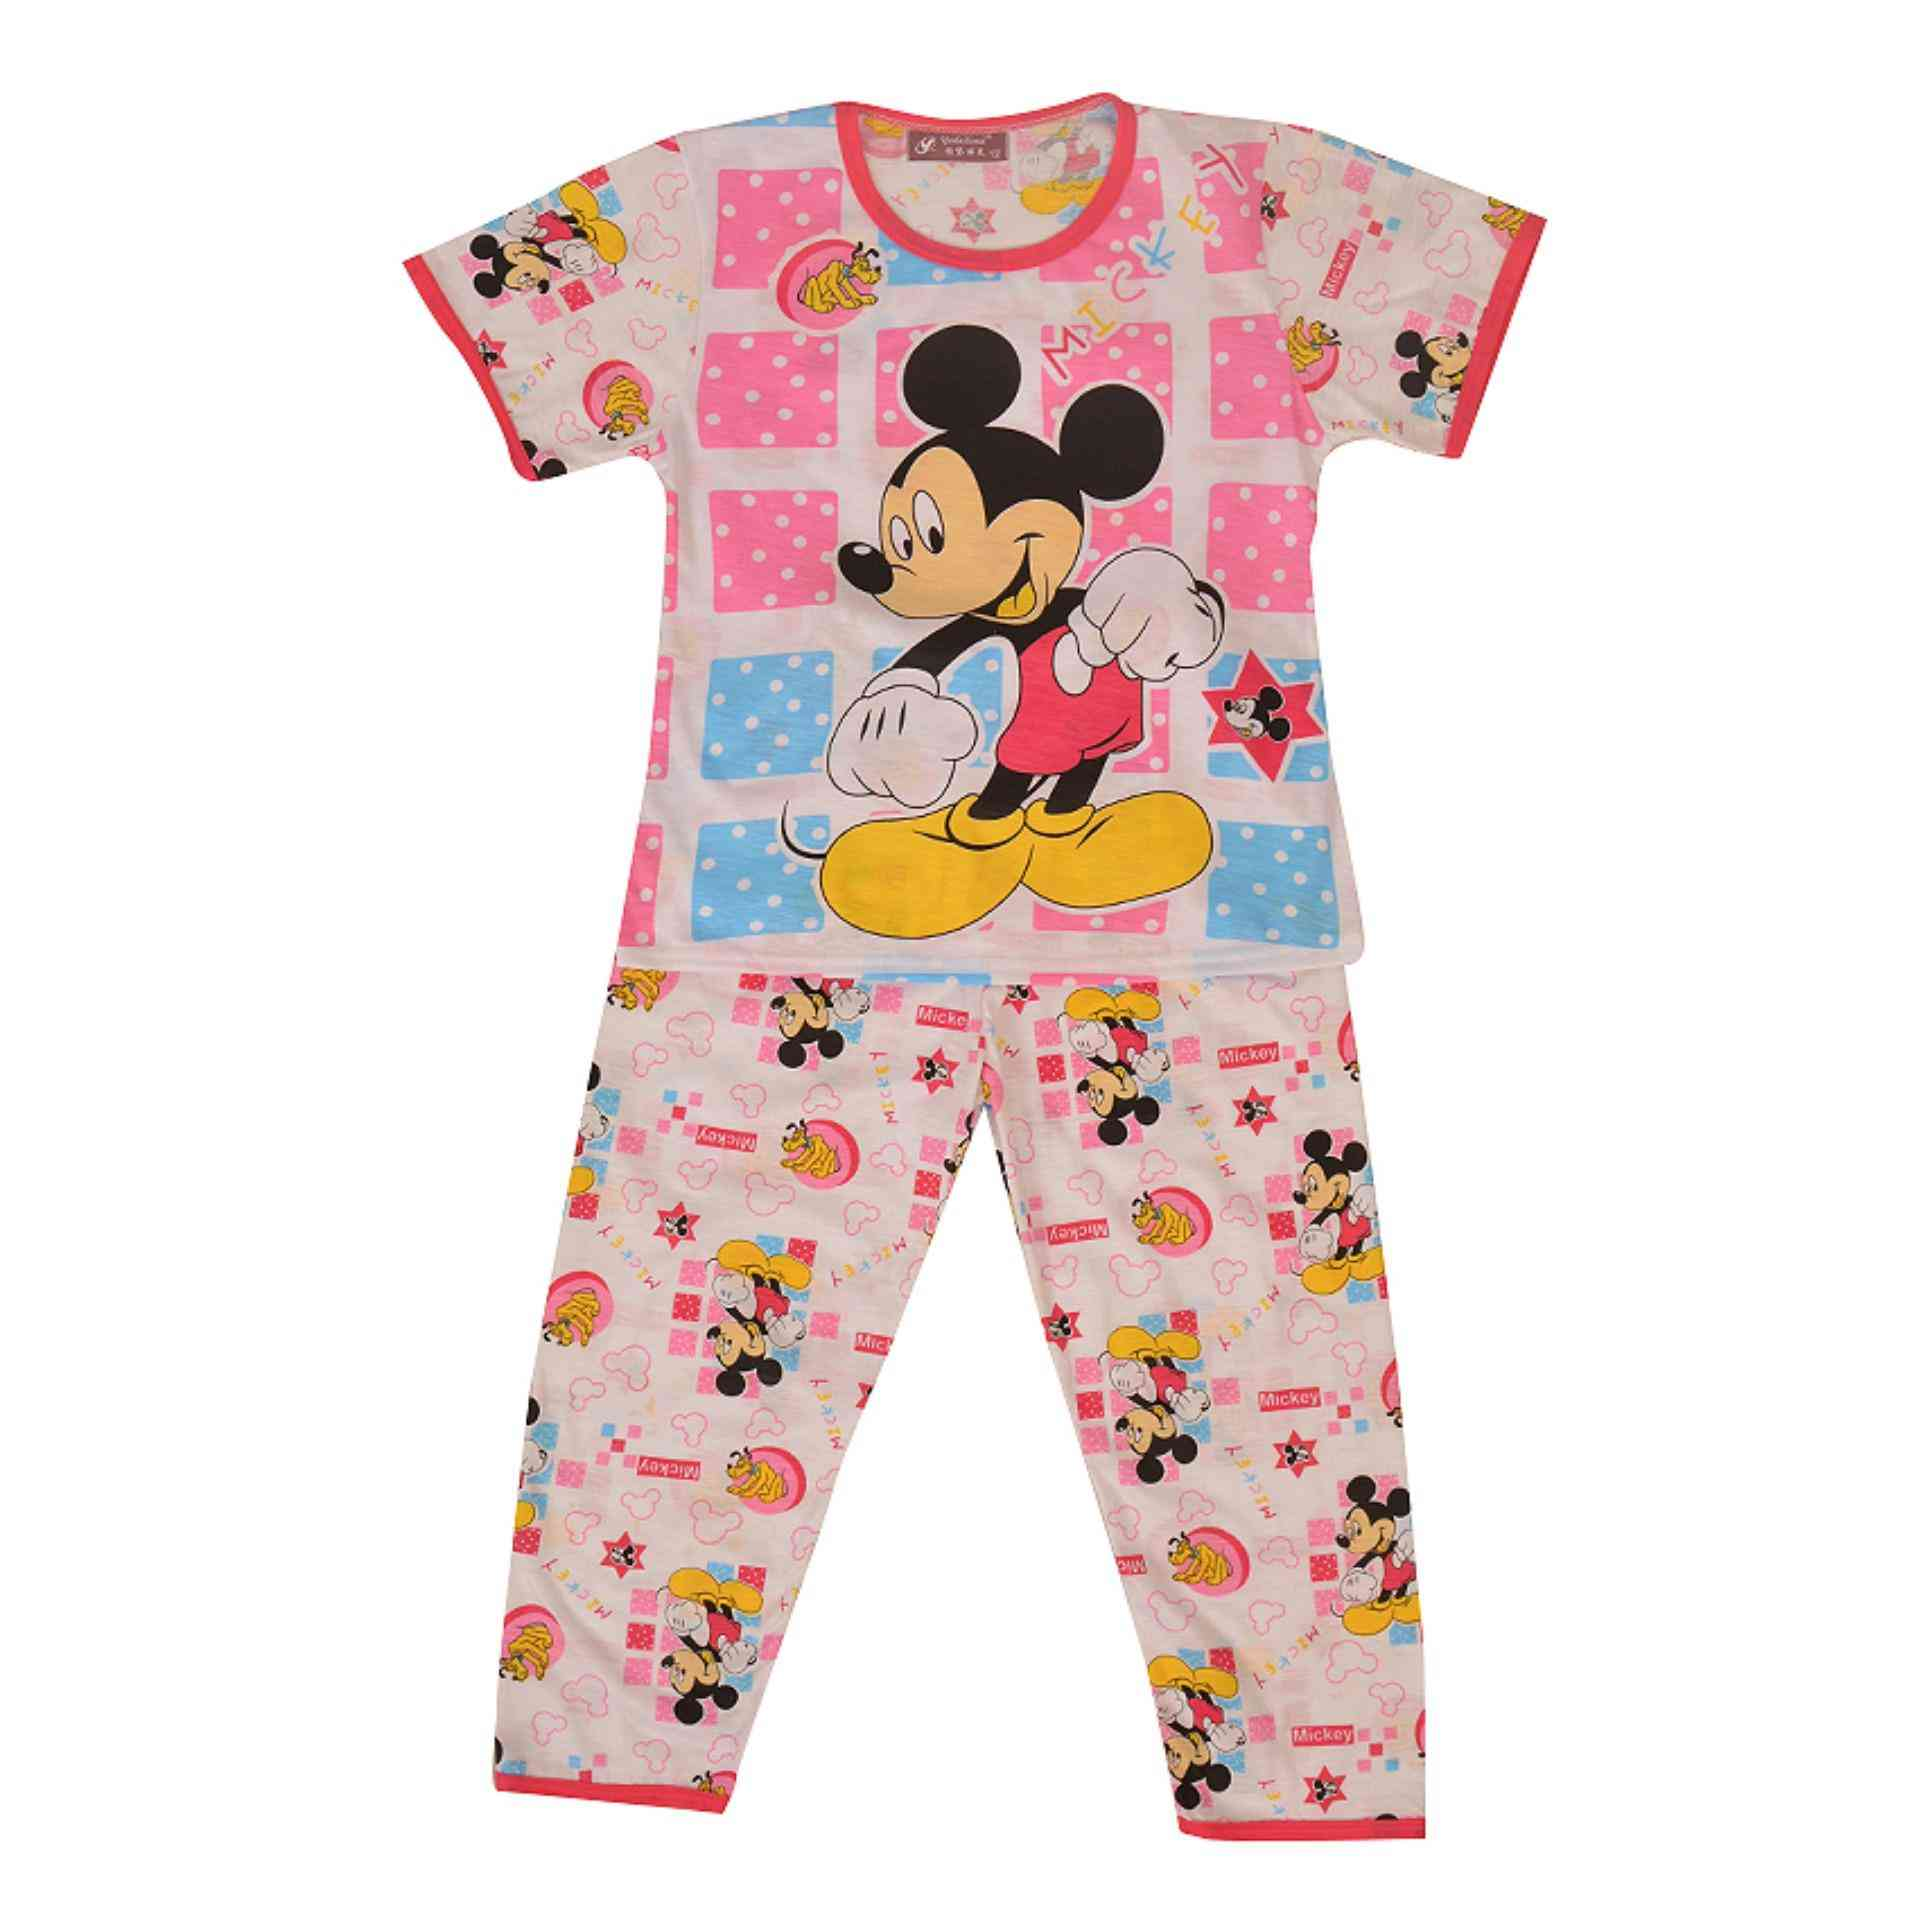 Pack of 2 Pure Cotton Night Suit (Pajama + Tshirt) for Girls - Mickey Mouse